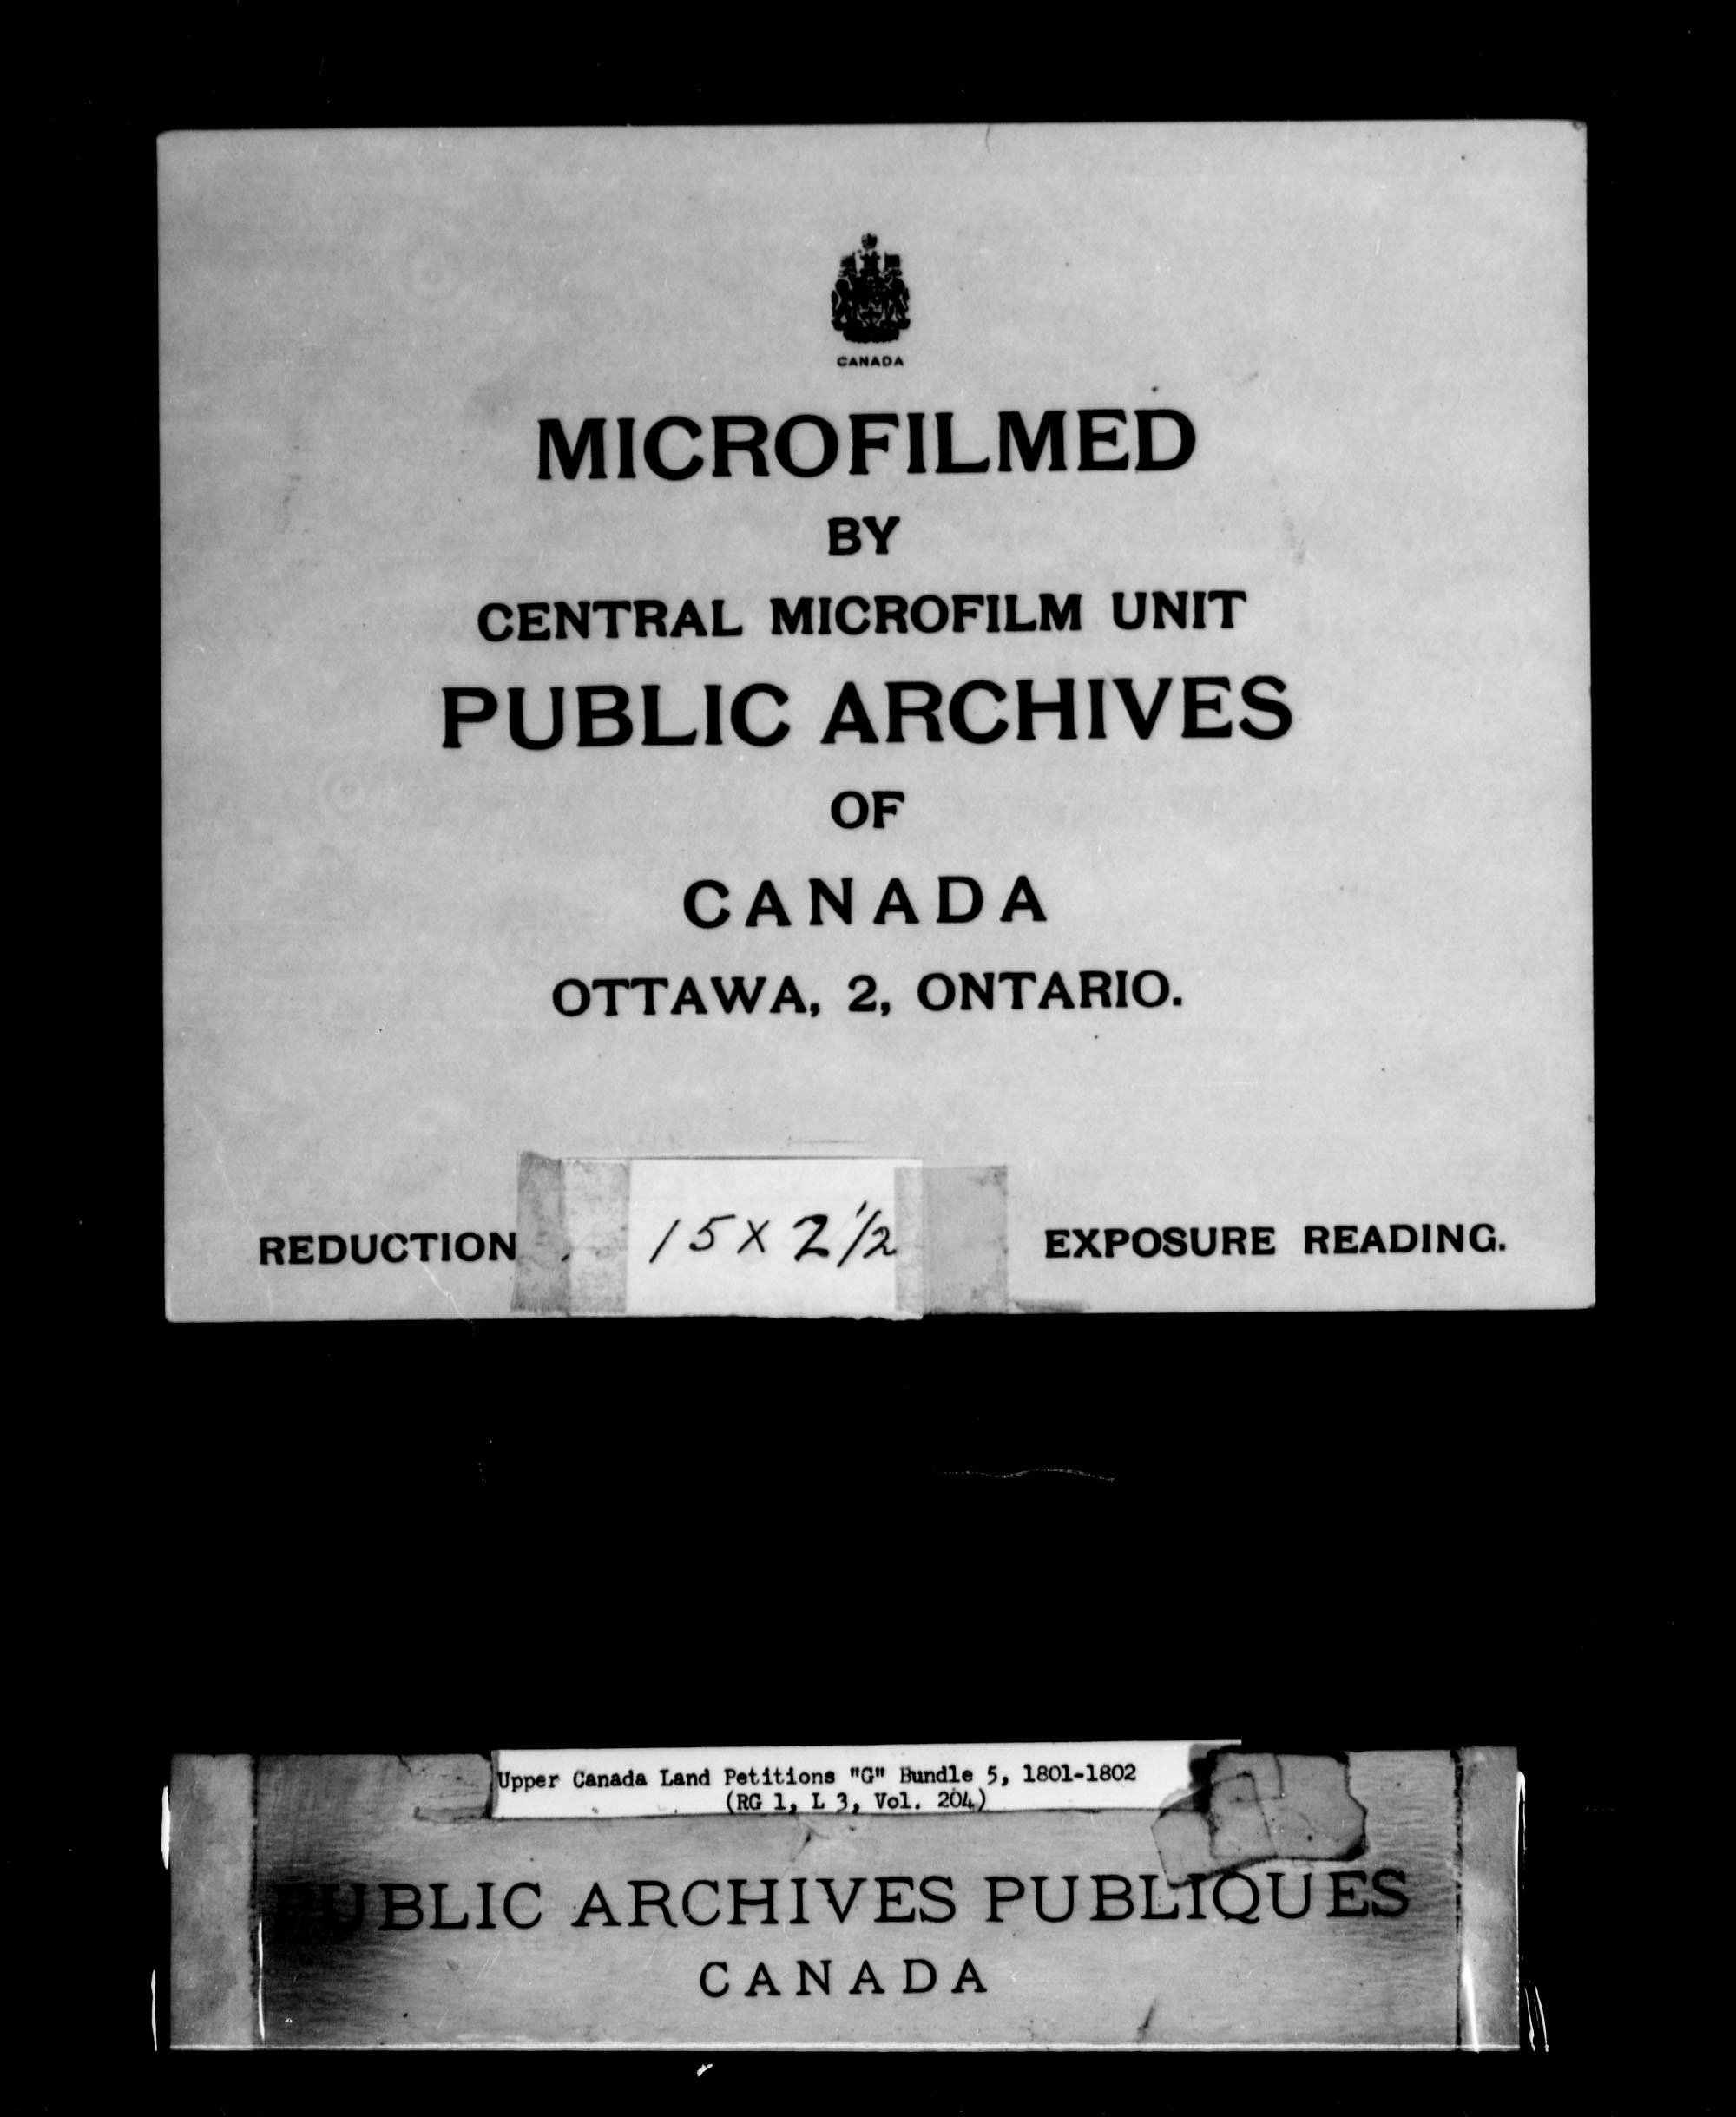 Title: Upper Canada Land Petitions (1763-1865) - Mikan Number: 205131 - Microform: c-2029